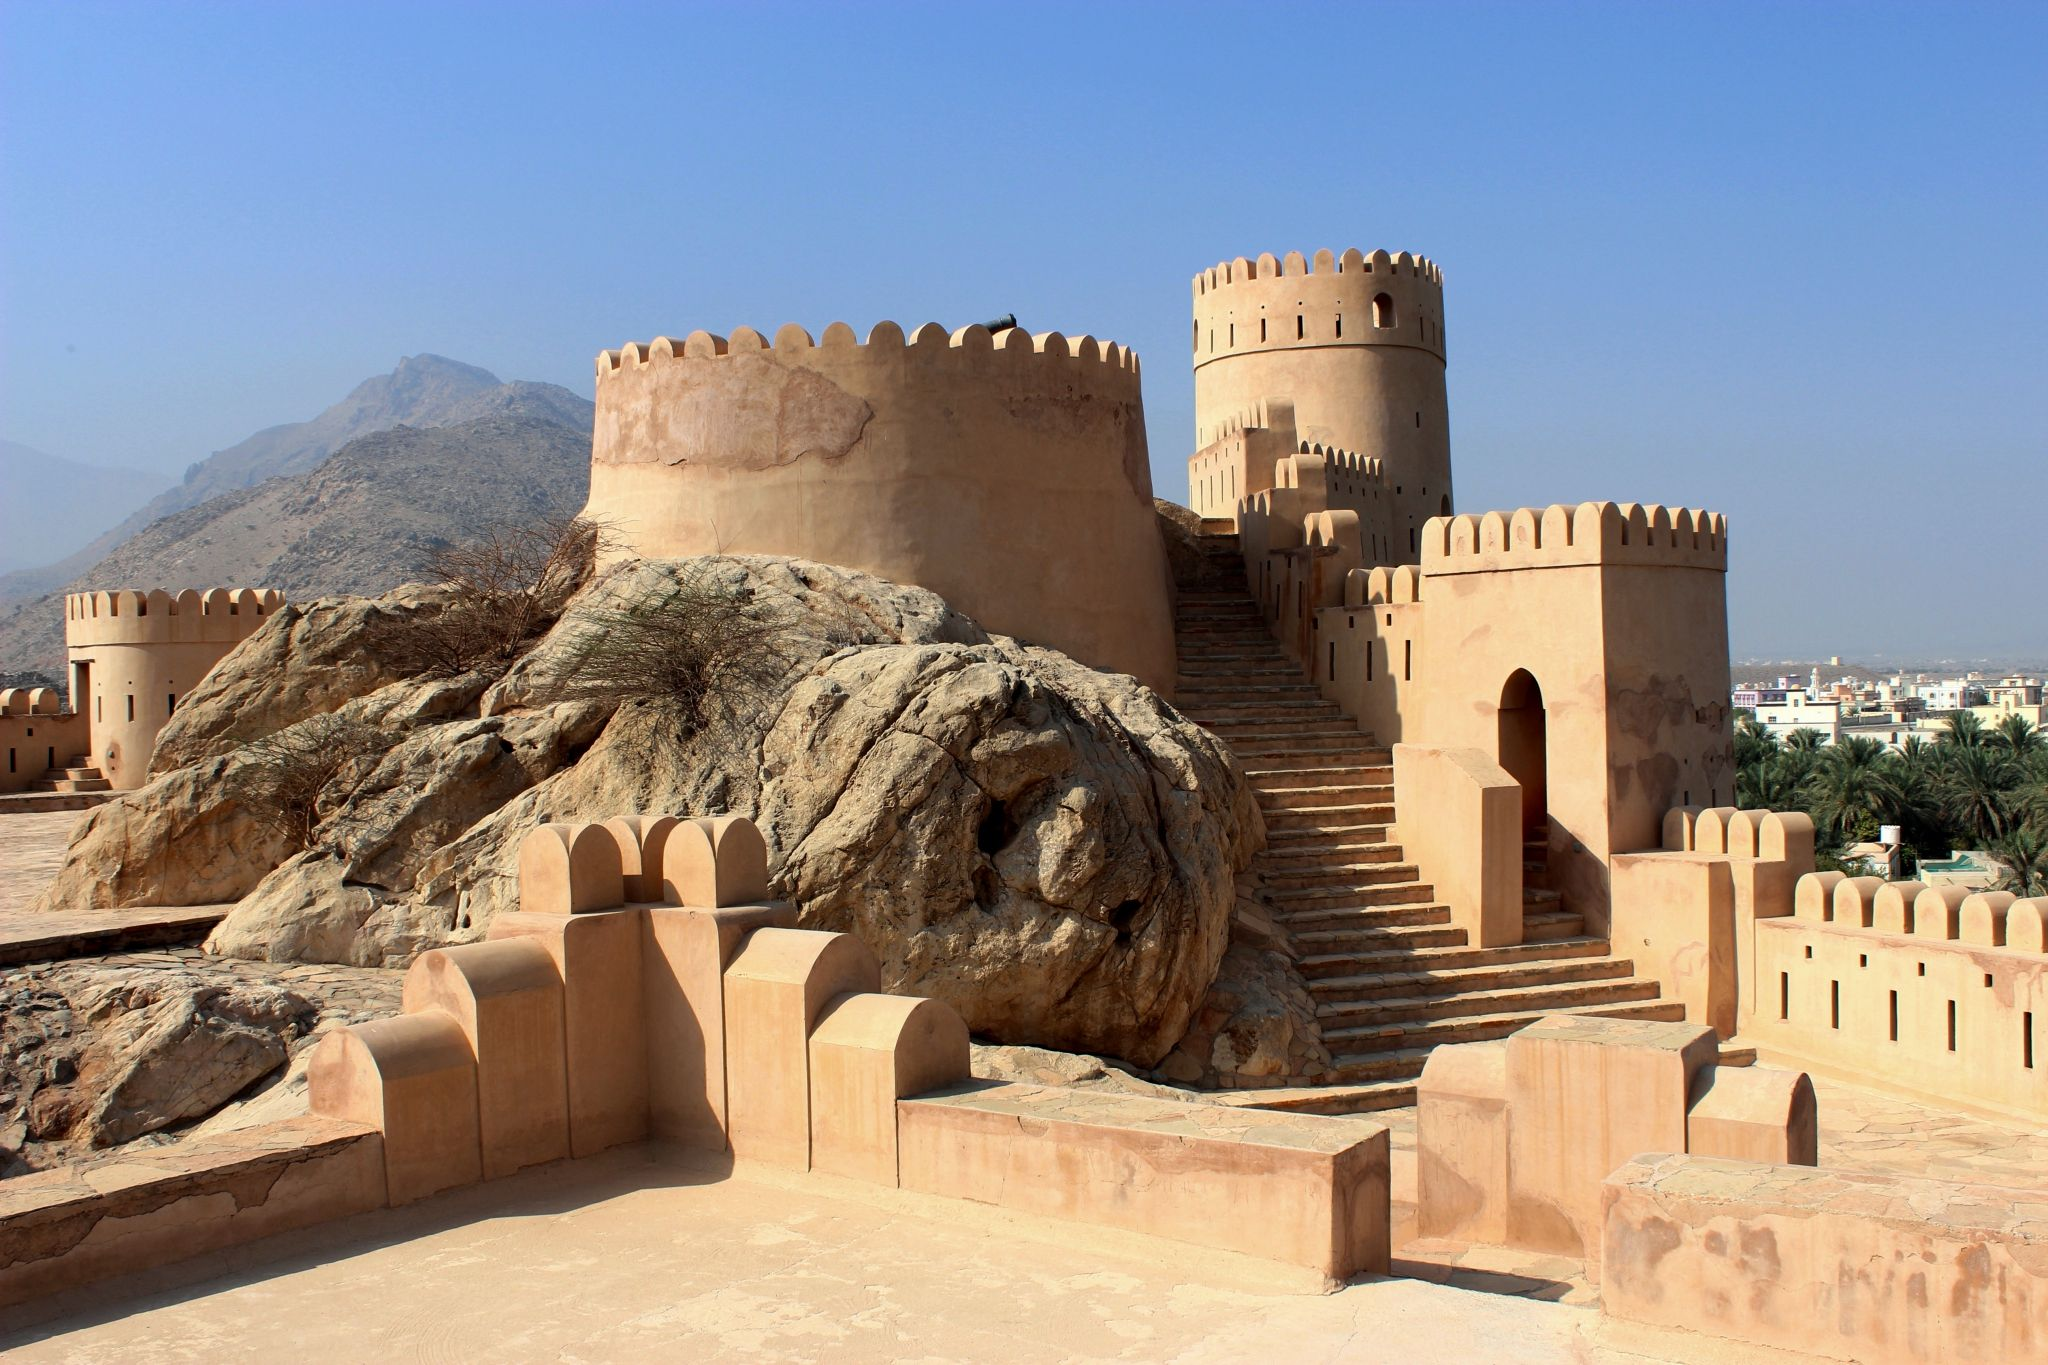 125 Oman Tours From Muscat To Barka Nakhal Rustaq Trips In Oman Oman Egypt Tours Oman Trip